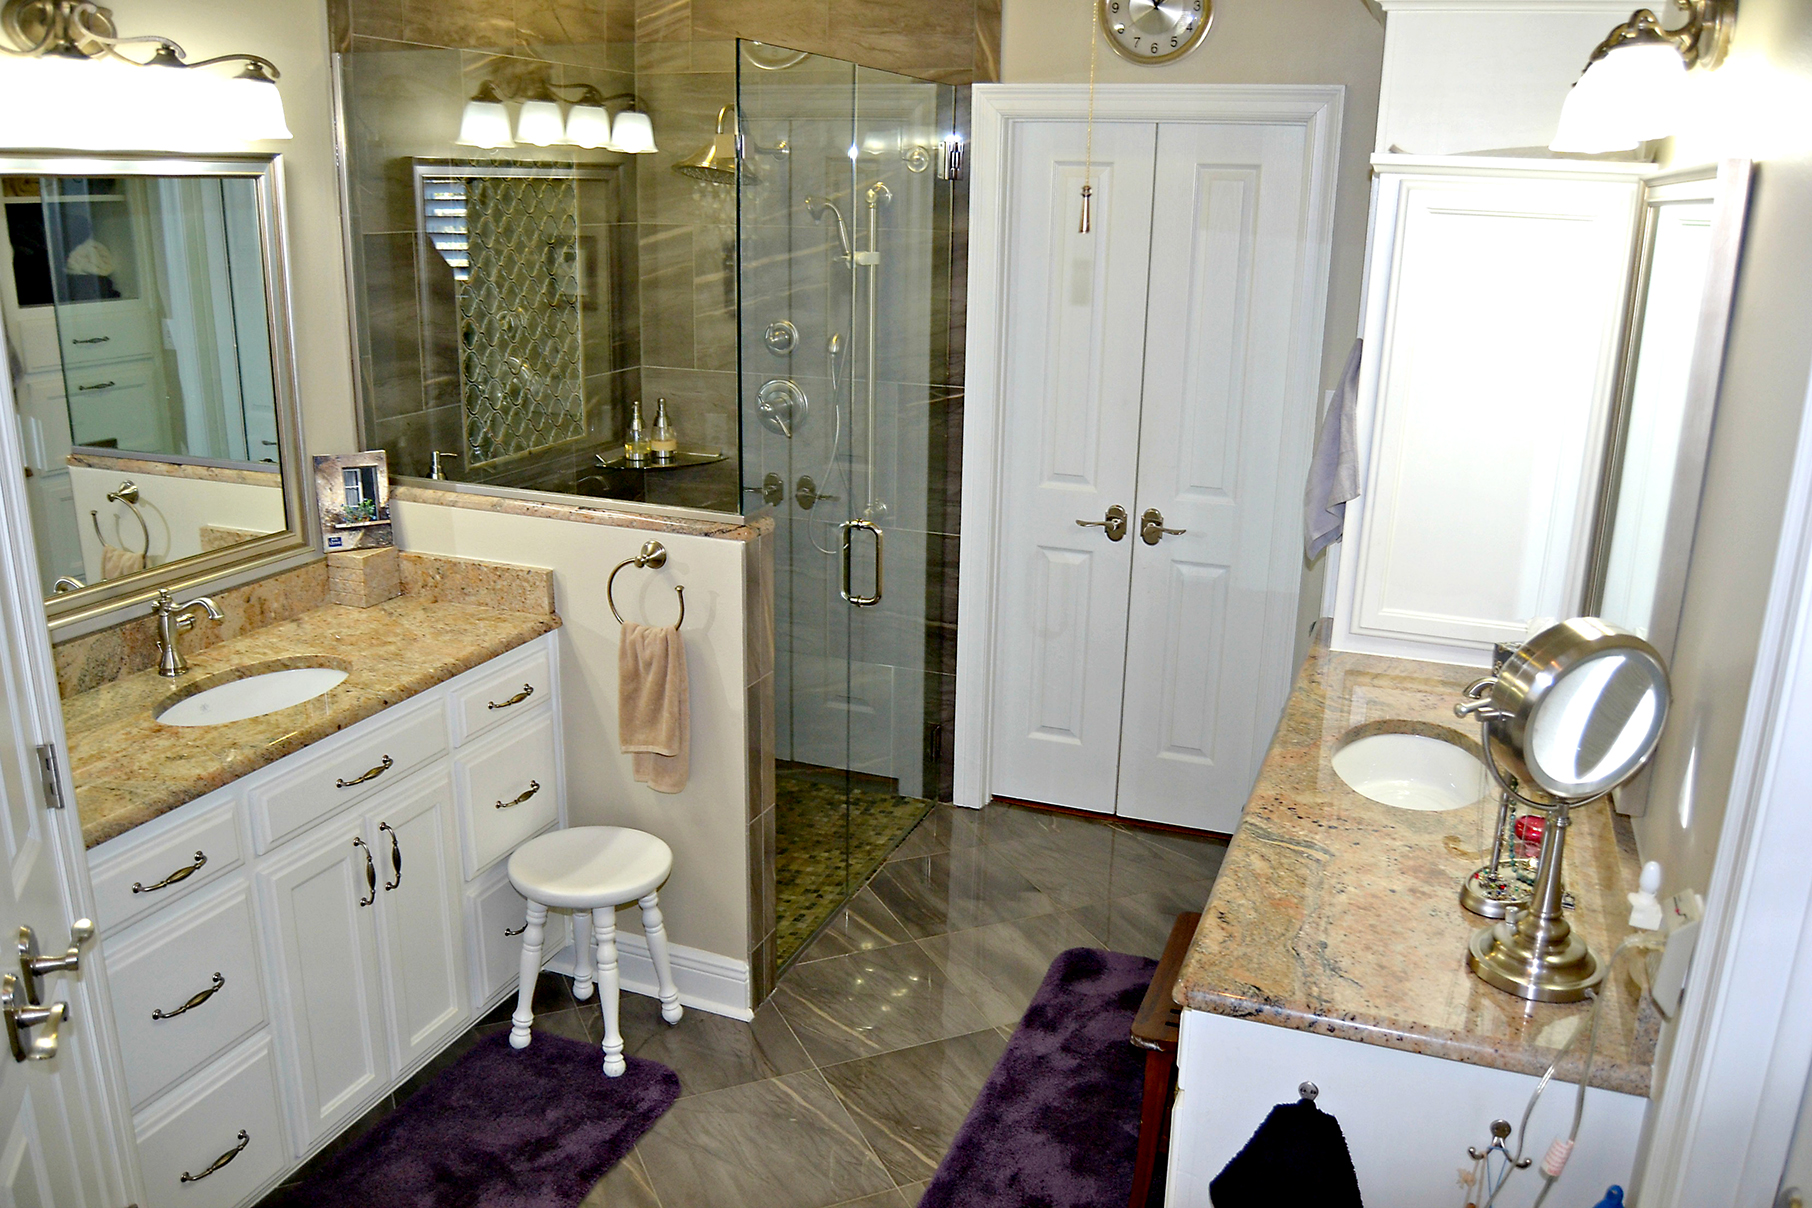 large extended doorways and zero clearance showers with a handlebar are among the features commonly included in aging in place bathroom remodeling projects - Bathroom Place